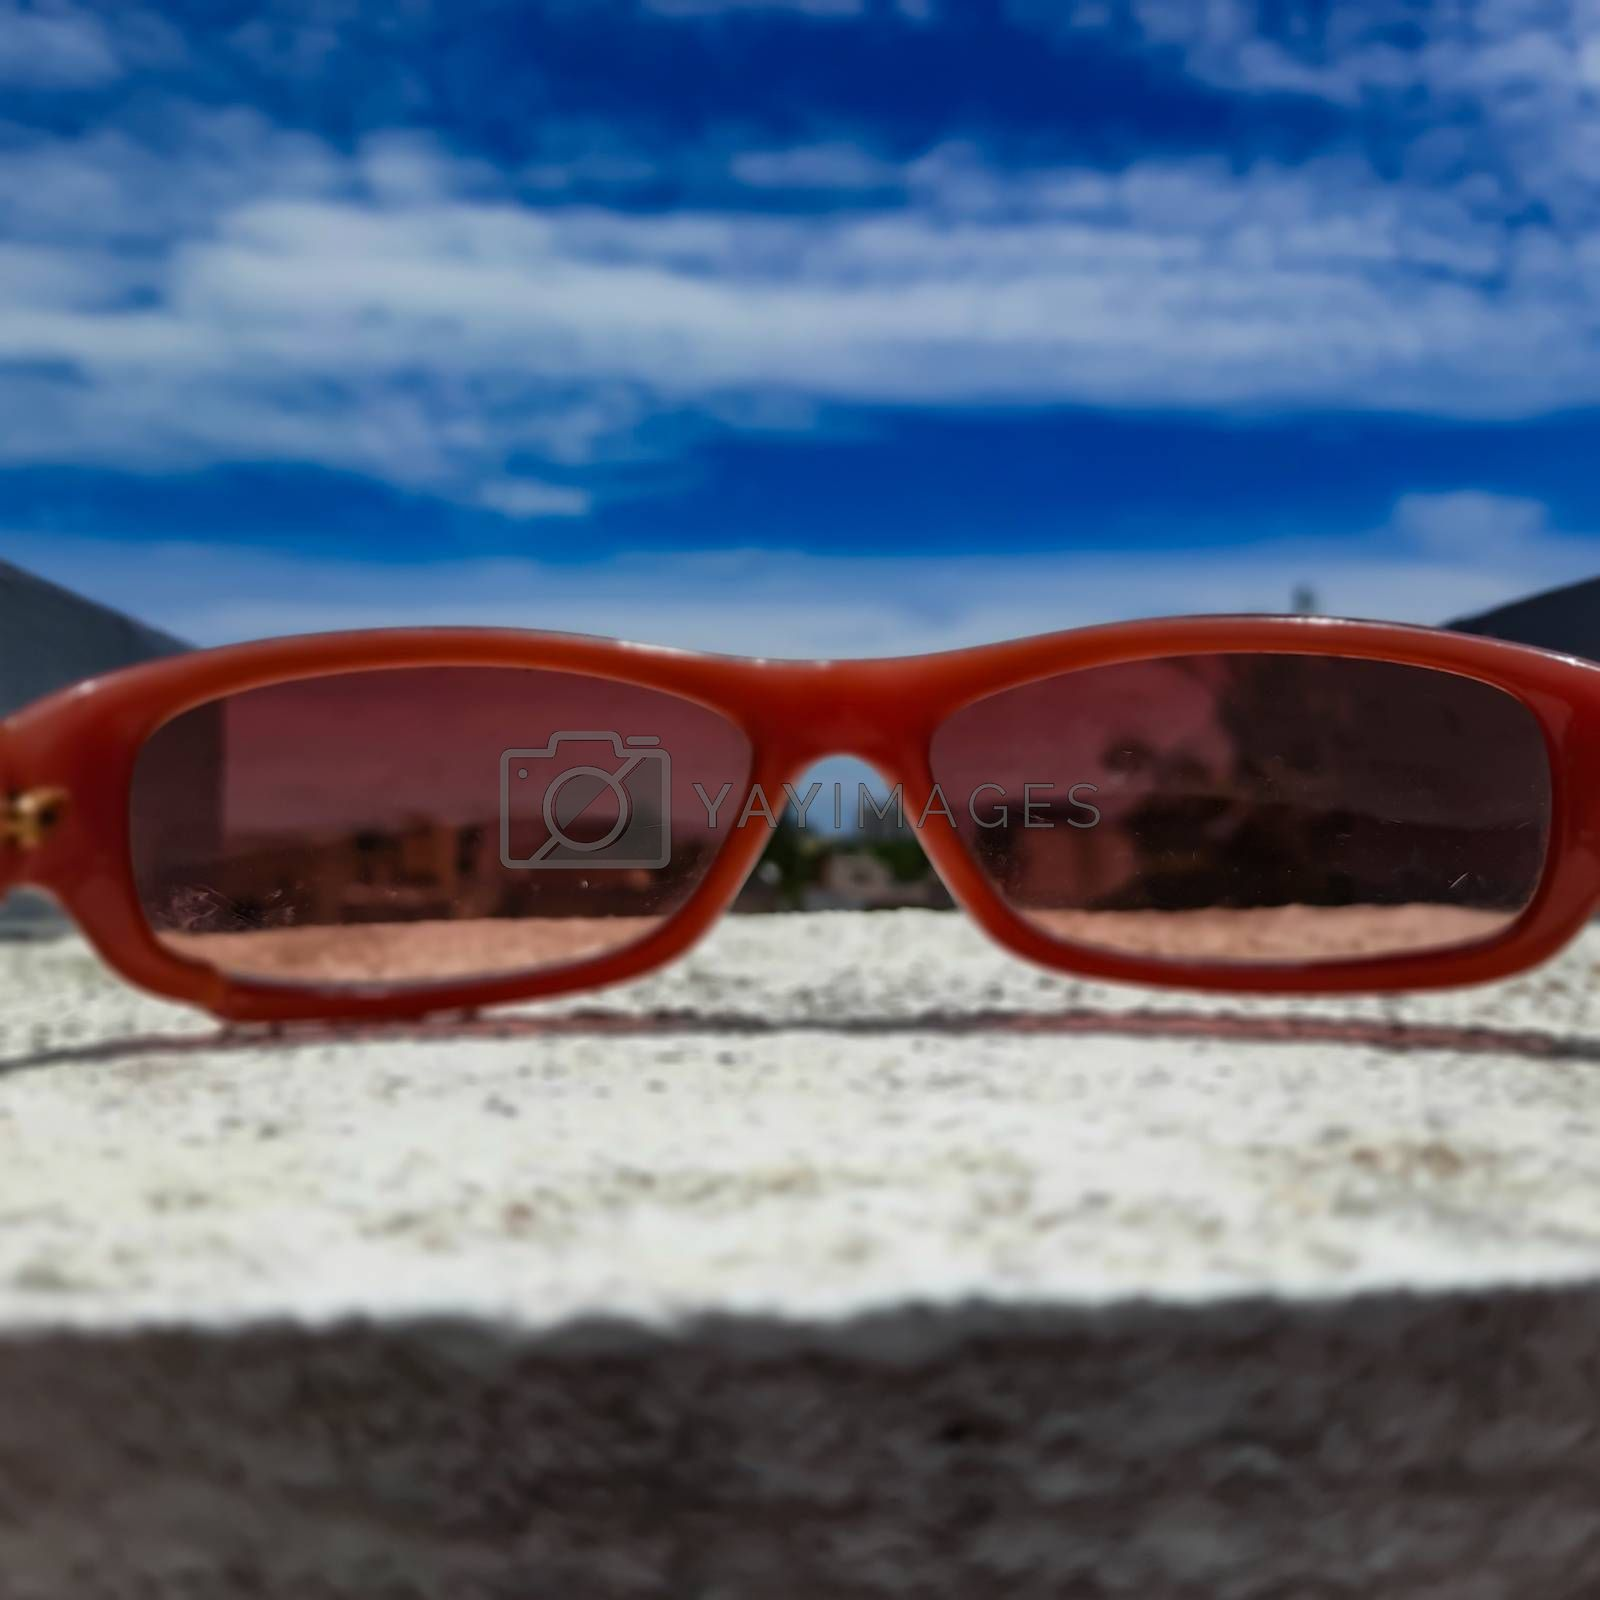 Chennai, India - July 3 2020: Red color glass placed in wall to see beautiful view of the sky from the glass lens